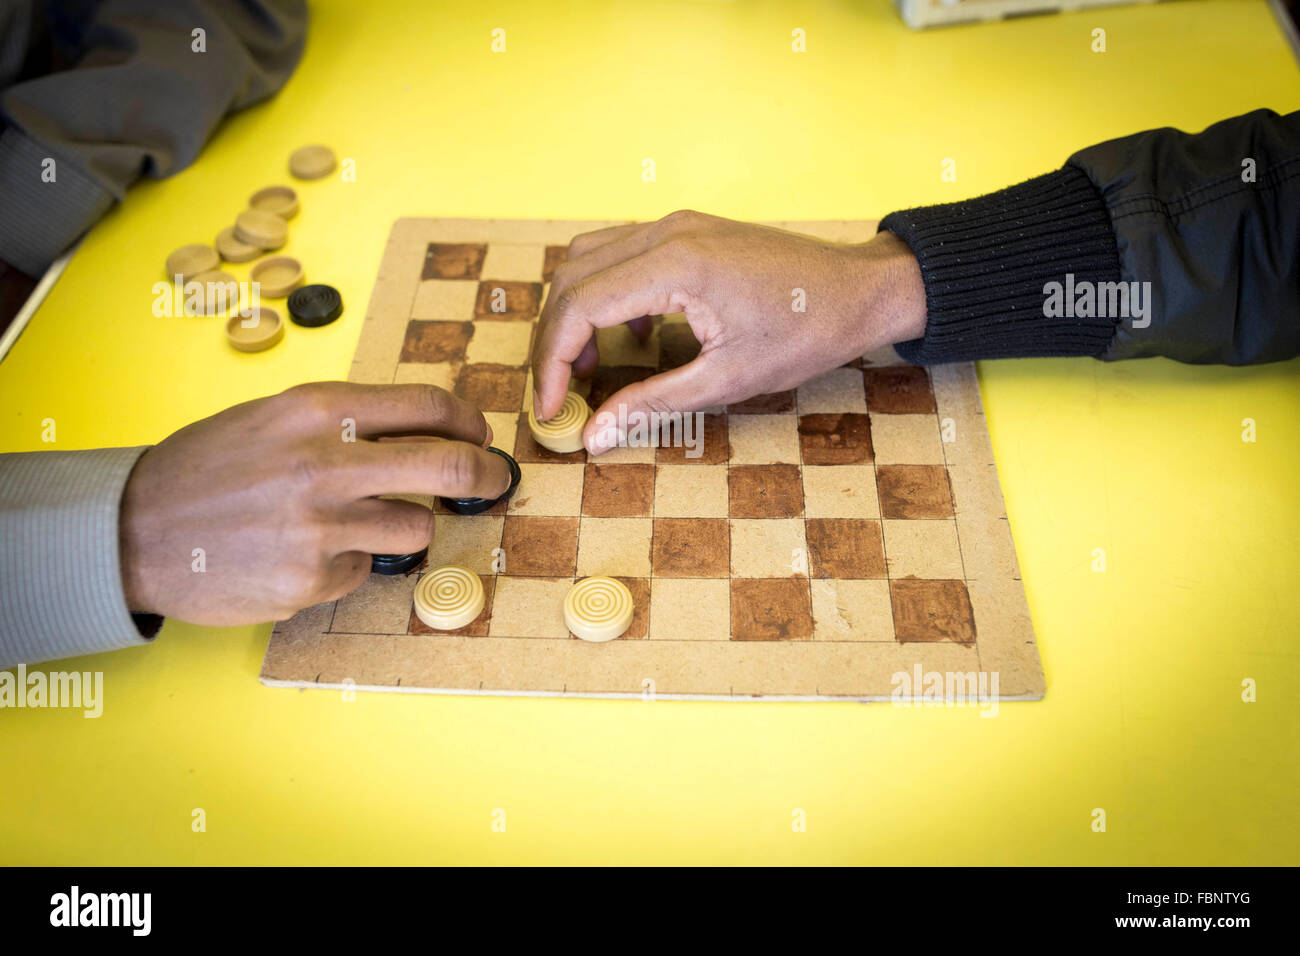 Two unidentifiable men play a game of draughts (US - checkers) at a community centre - Stock Image